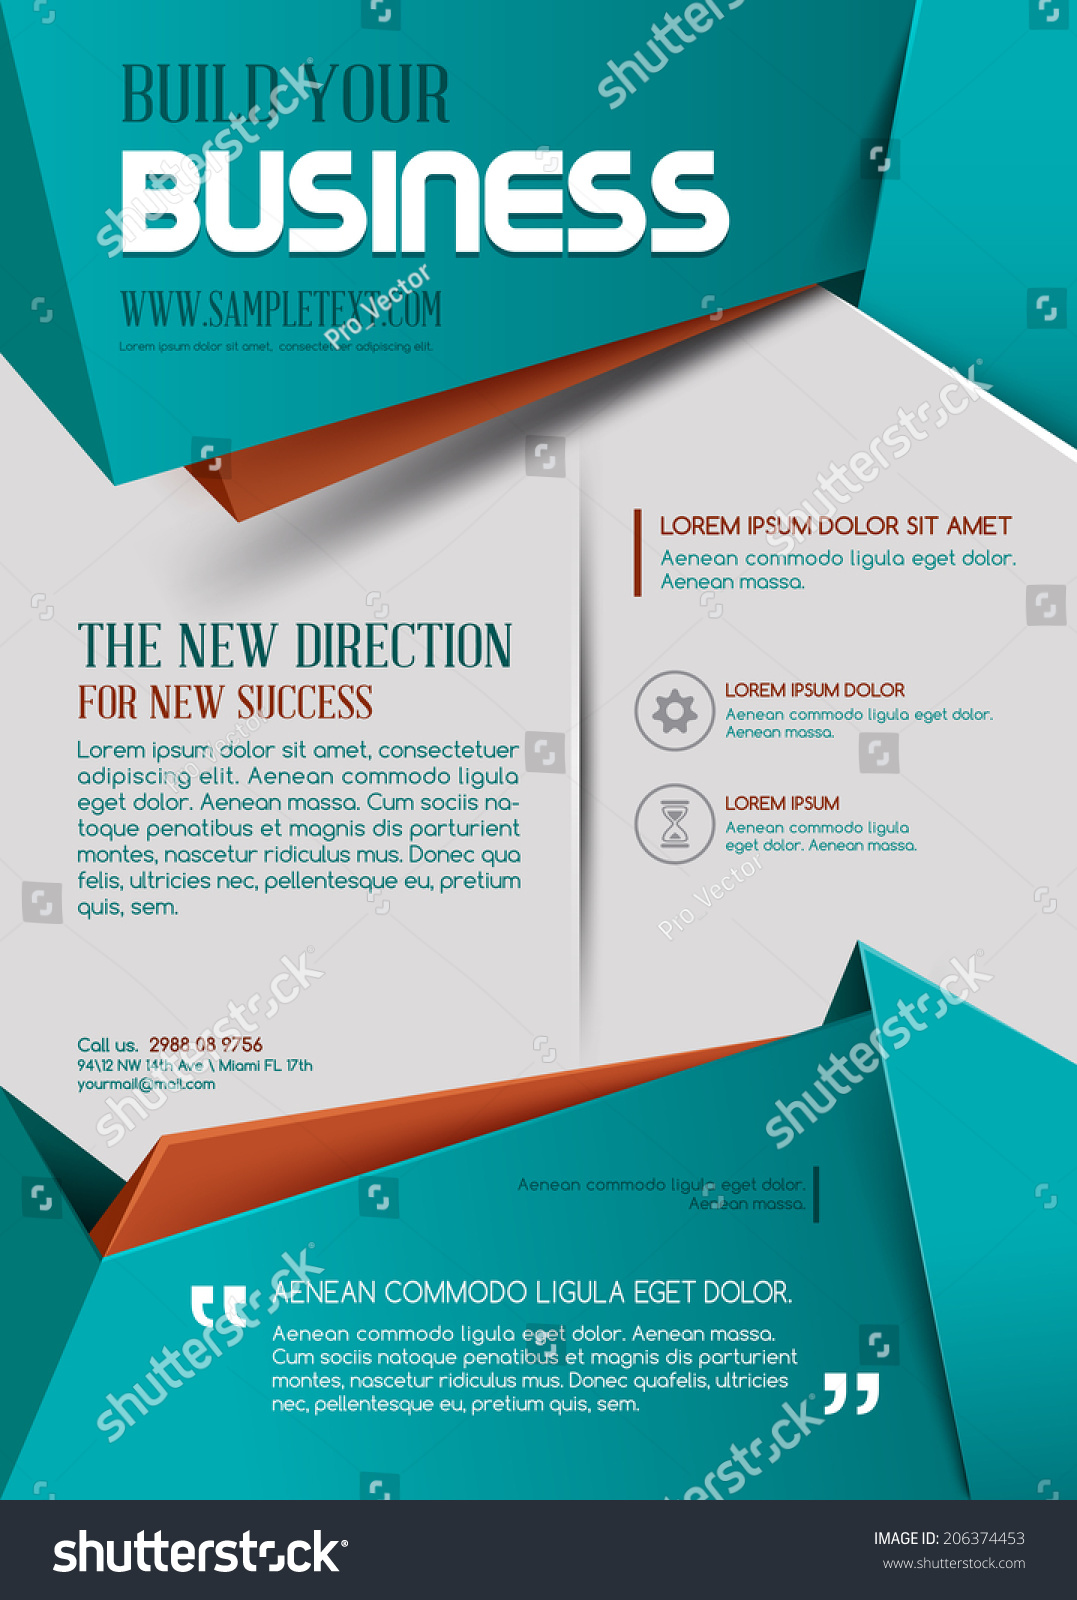 business template poster vector business flyer for your. Black Bedroom Furniture Sets. Home Design Ideas